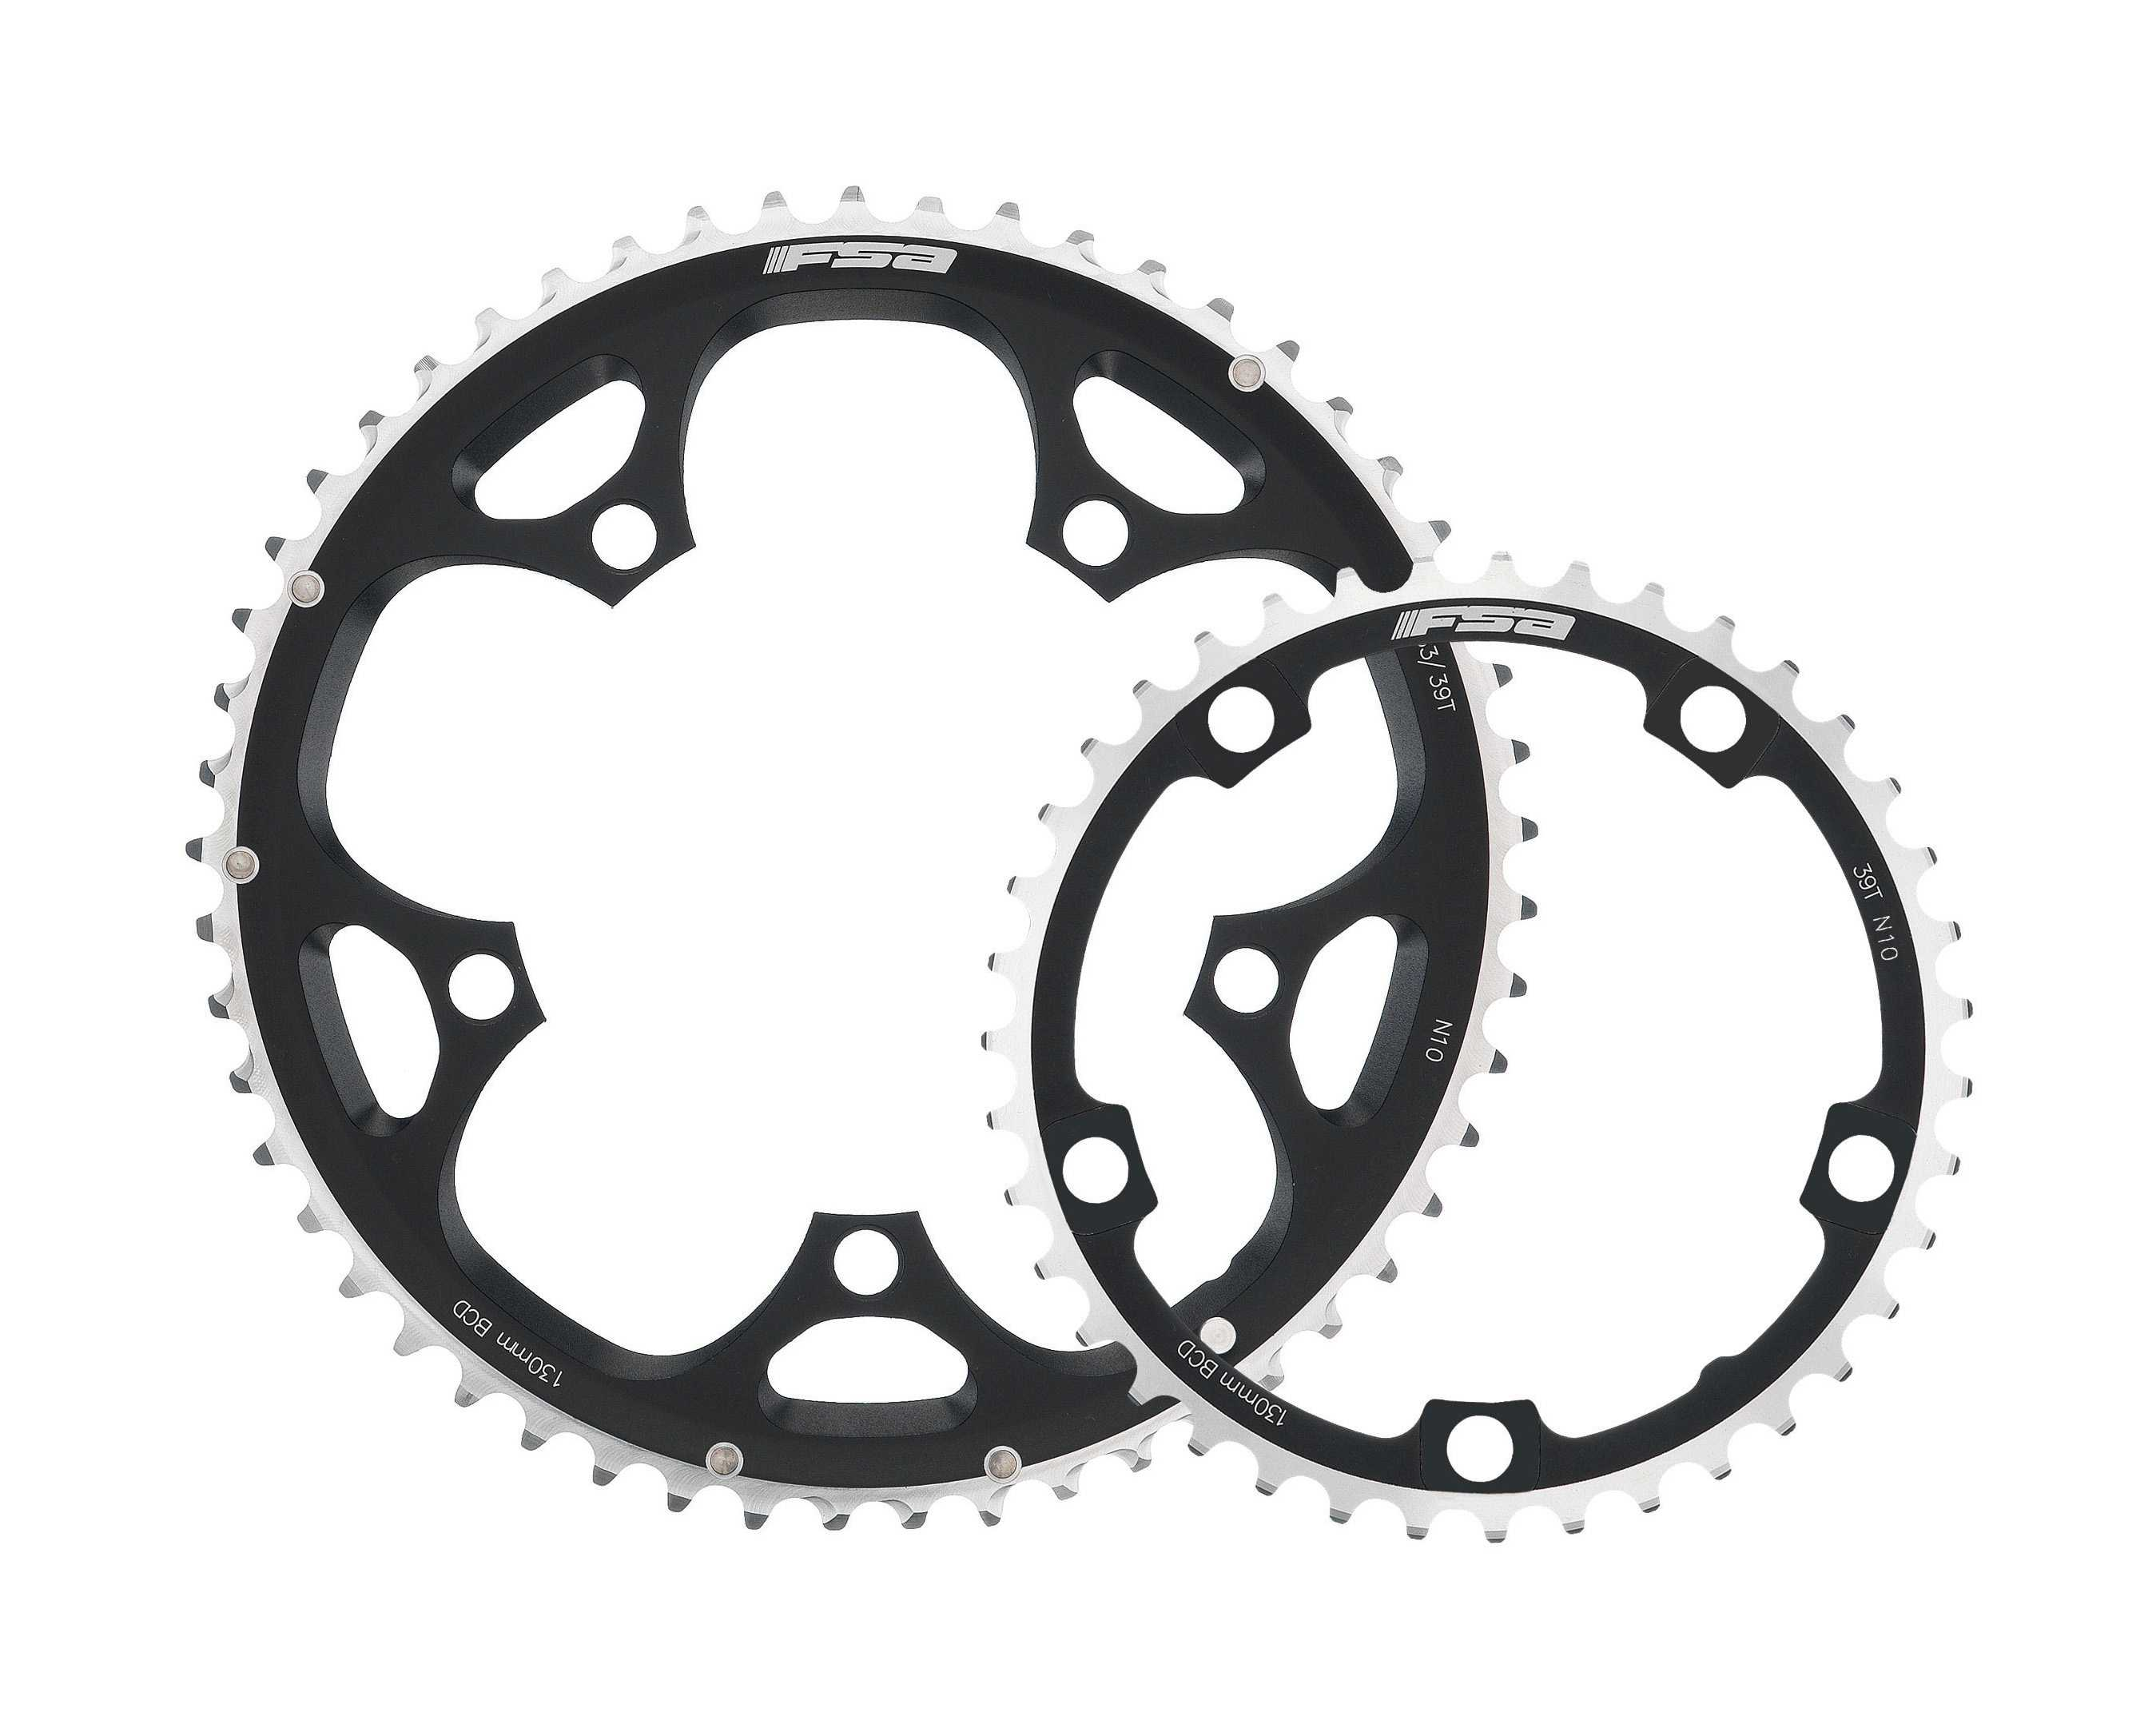 FSA Pro Road 11 Speed Double 50 Tooth 110BCD Chainring - Black